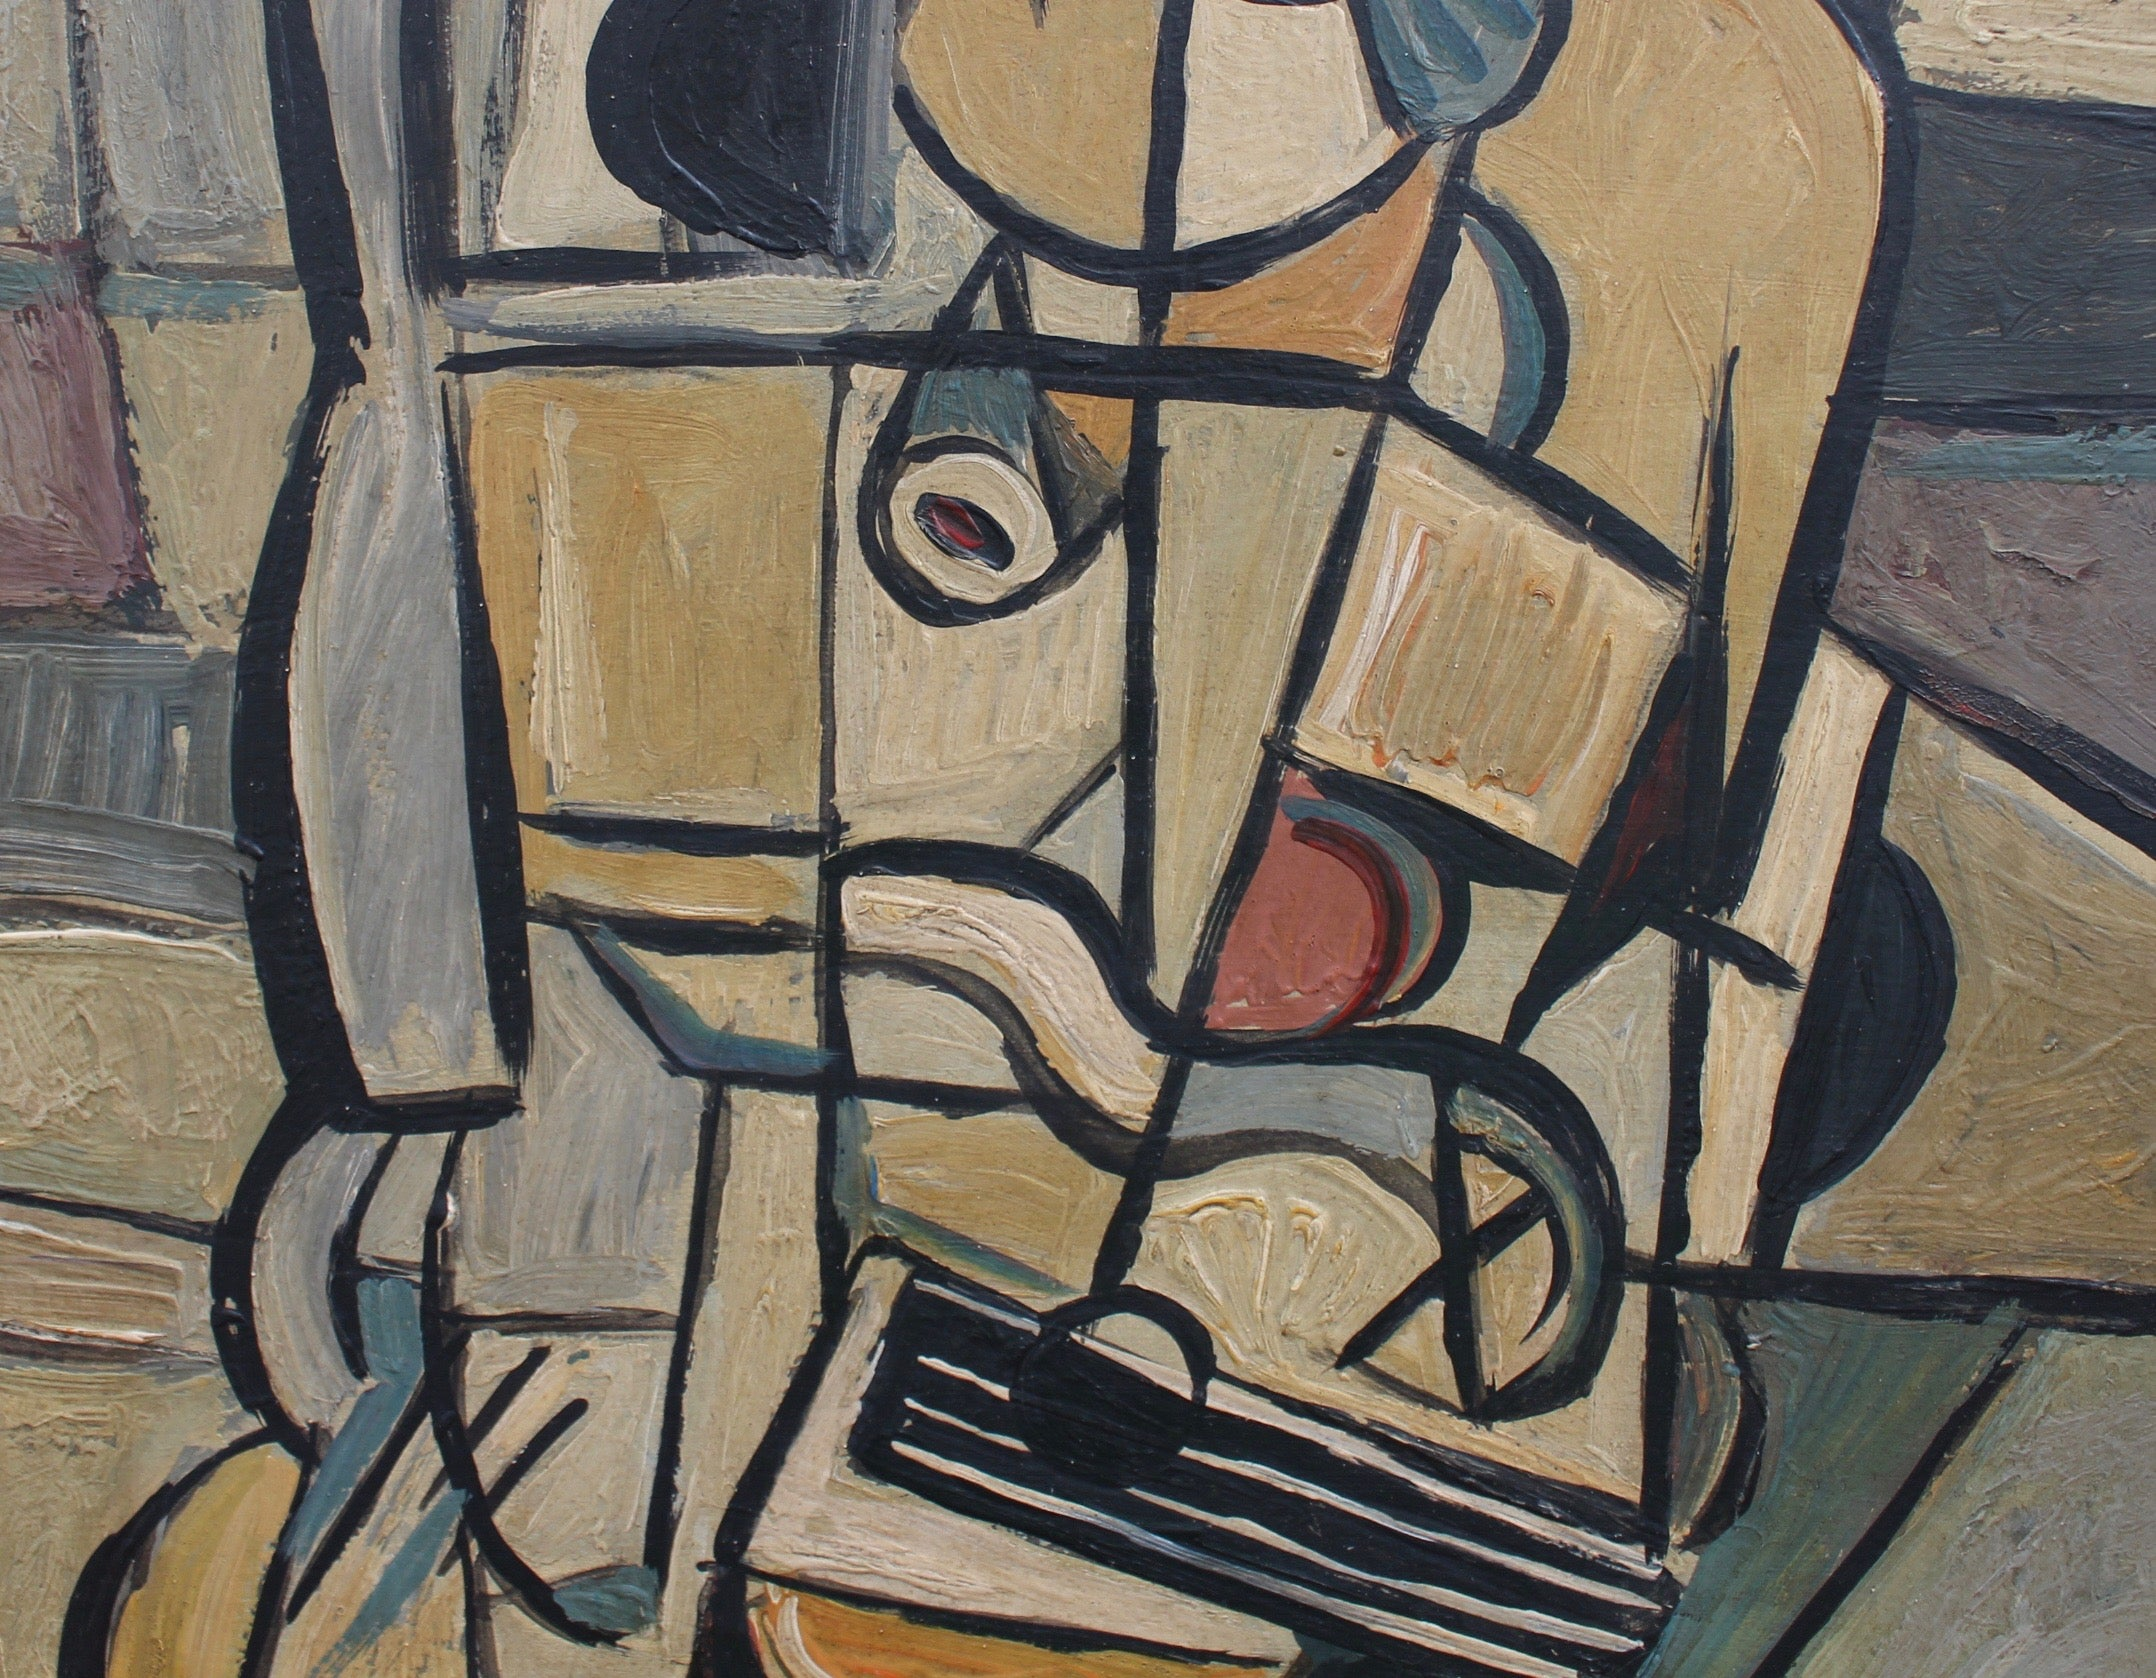 'The Guitarist', by J.G. (circa 1940s - 1960s)